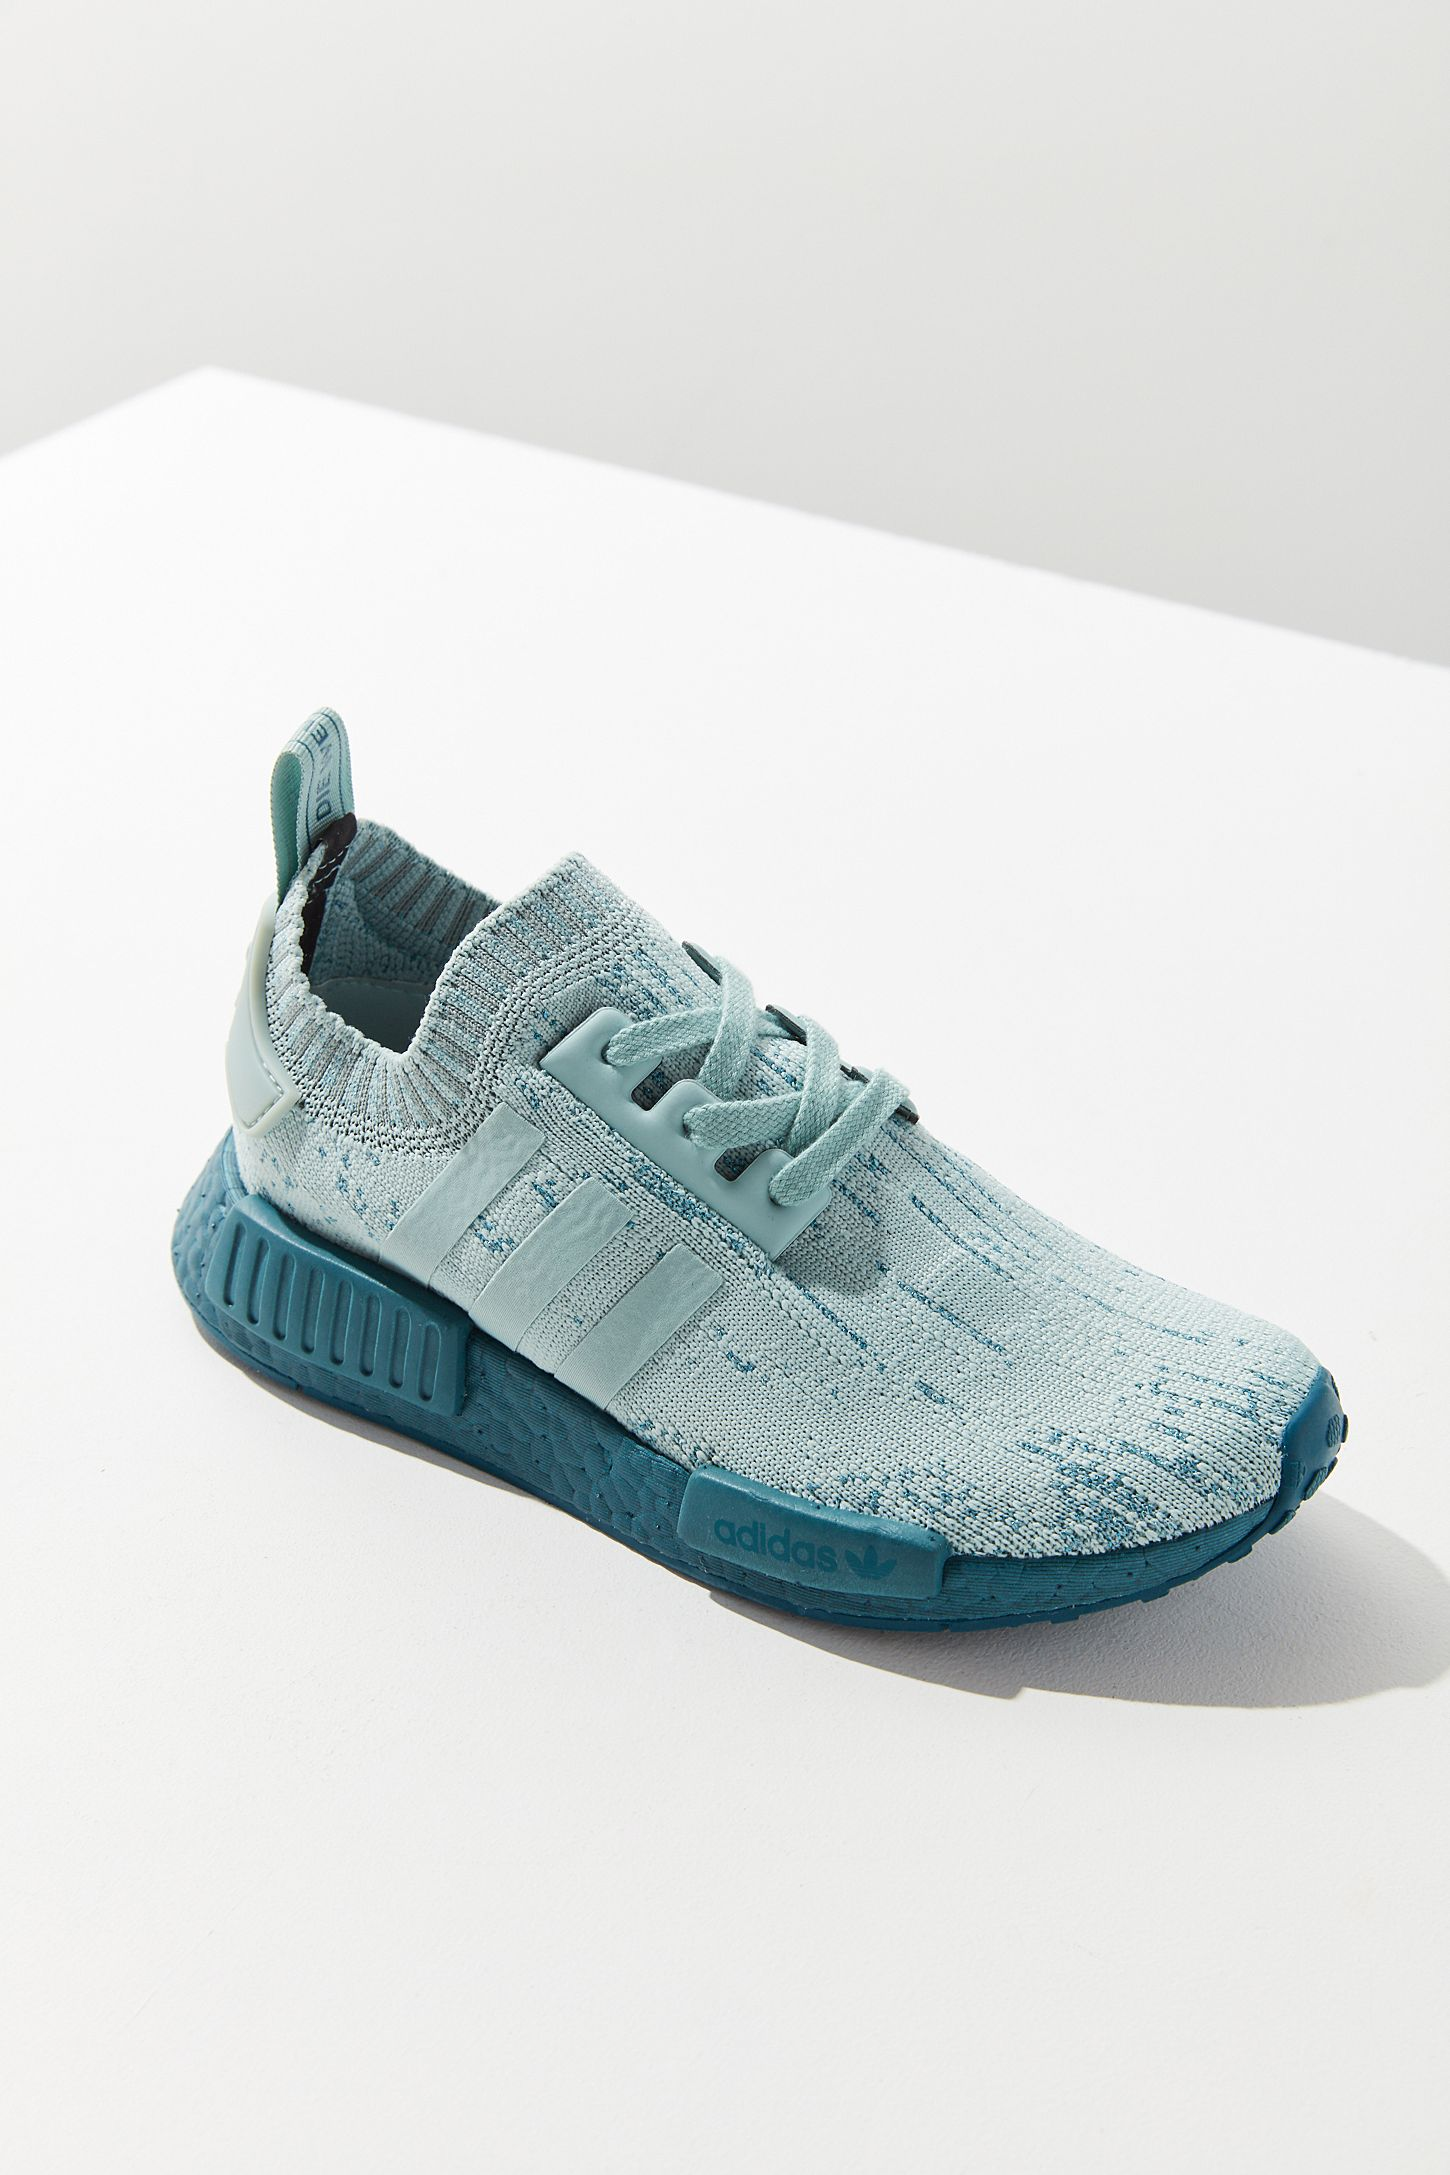 quality design 661e7 68c11 adidas Originals NMD R1 Primeknit Mint Sneaker. Tap image to zoom. Hover to  zoom. Double Tap to Zoom